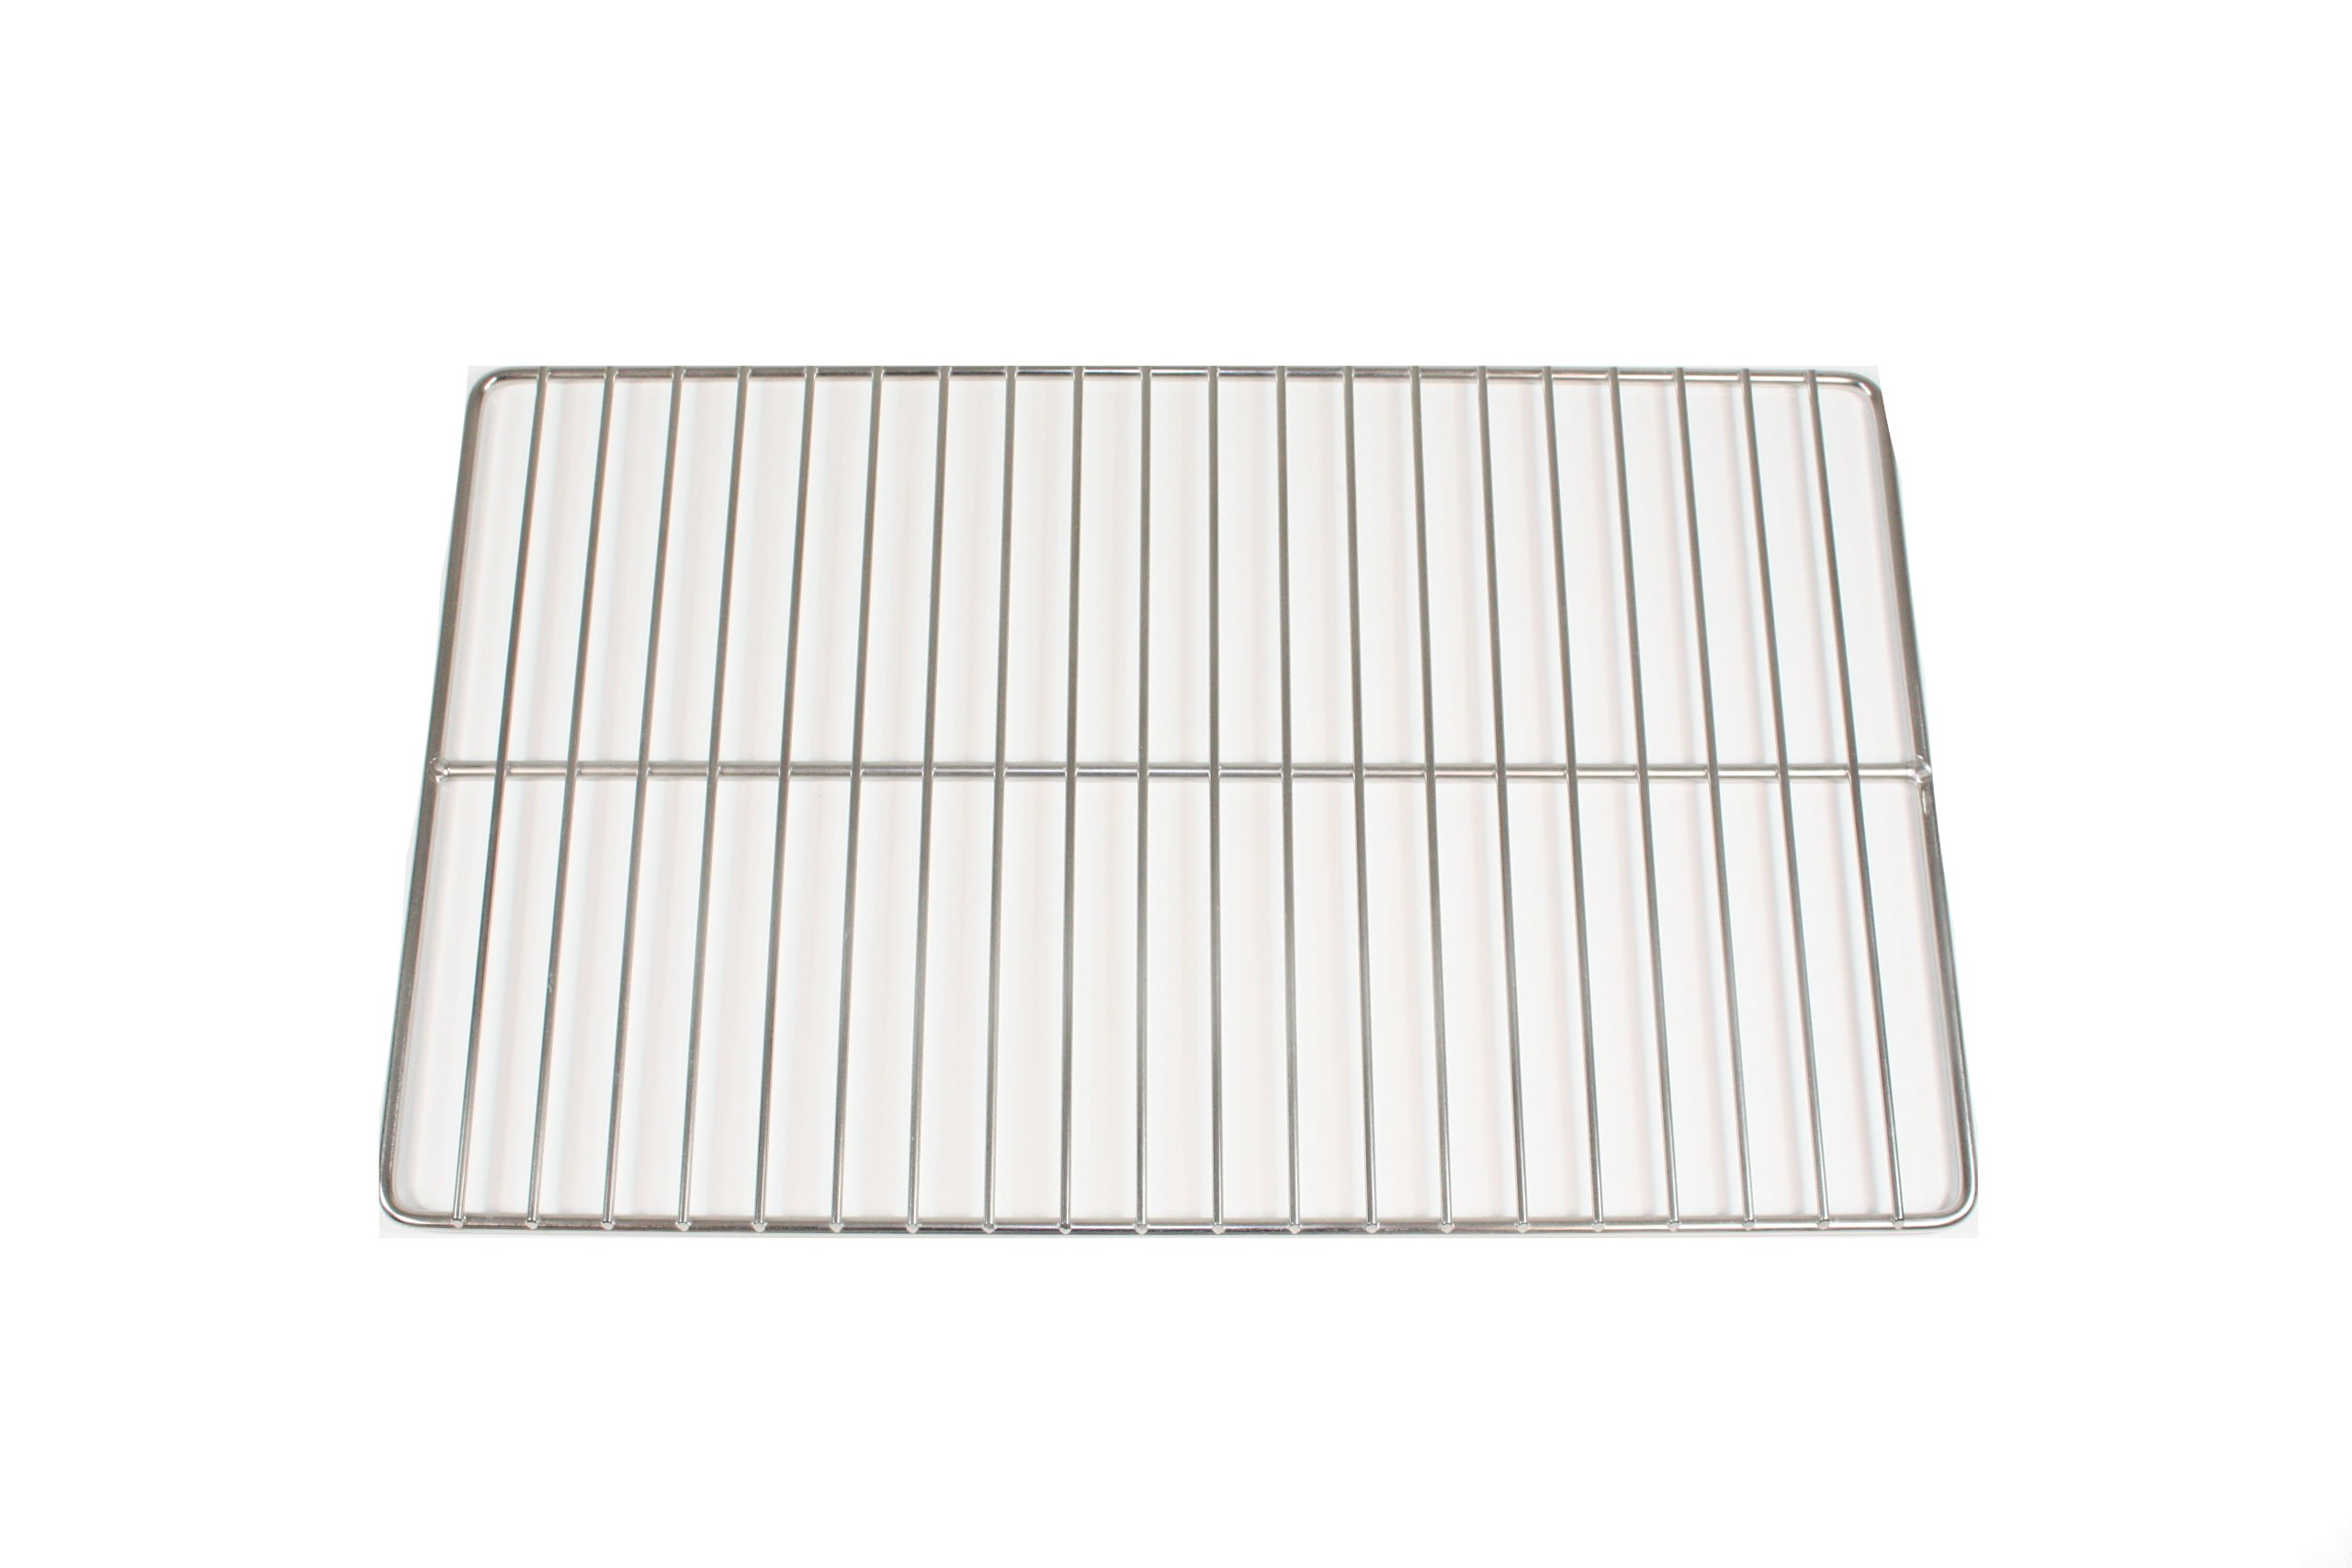 Paderno World Cuisine 20 7/8 Inch by 12 3/4 Inch Stainless-steel Cooling Rack by Paderno World Cuisine (Image #1)